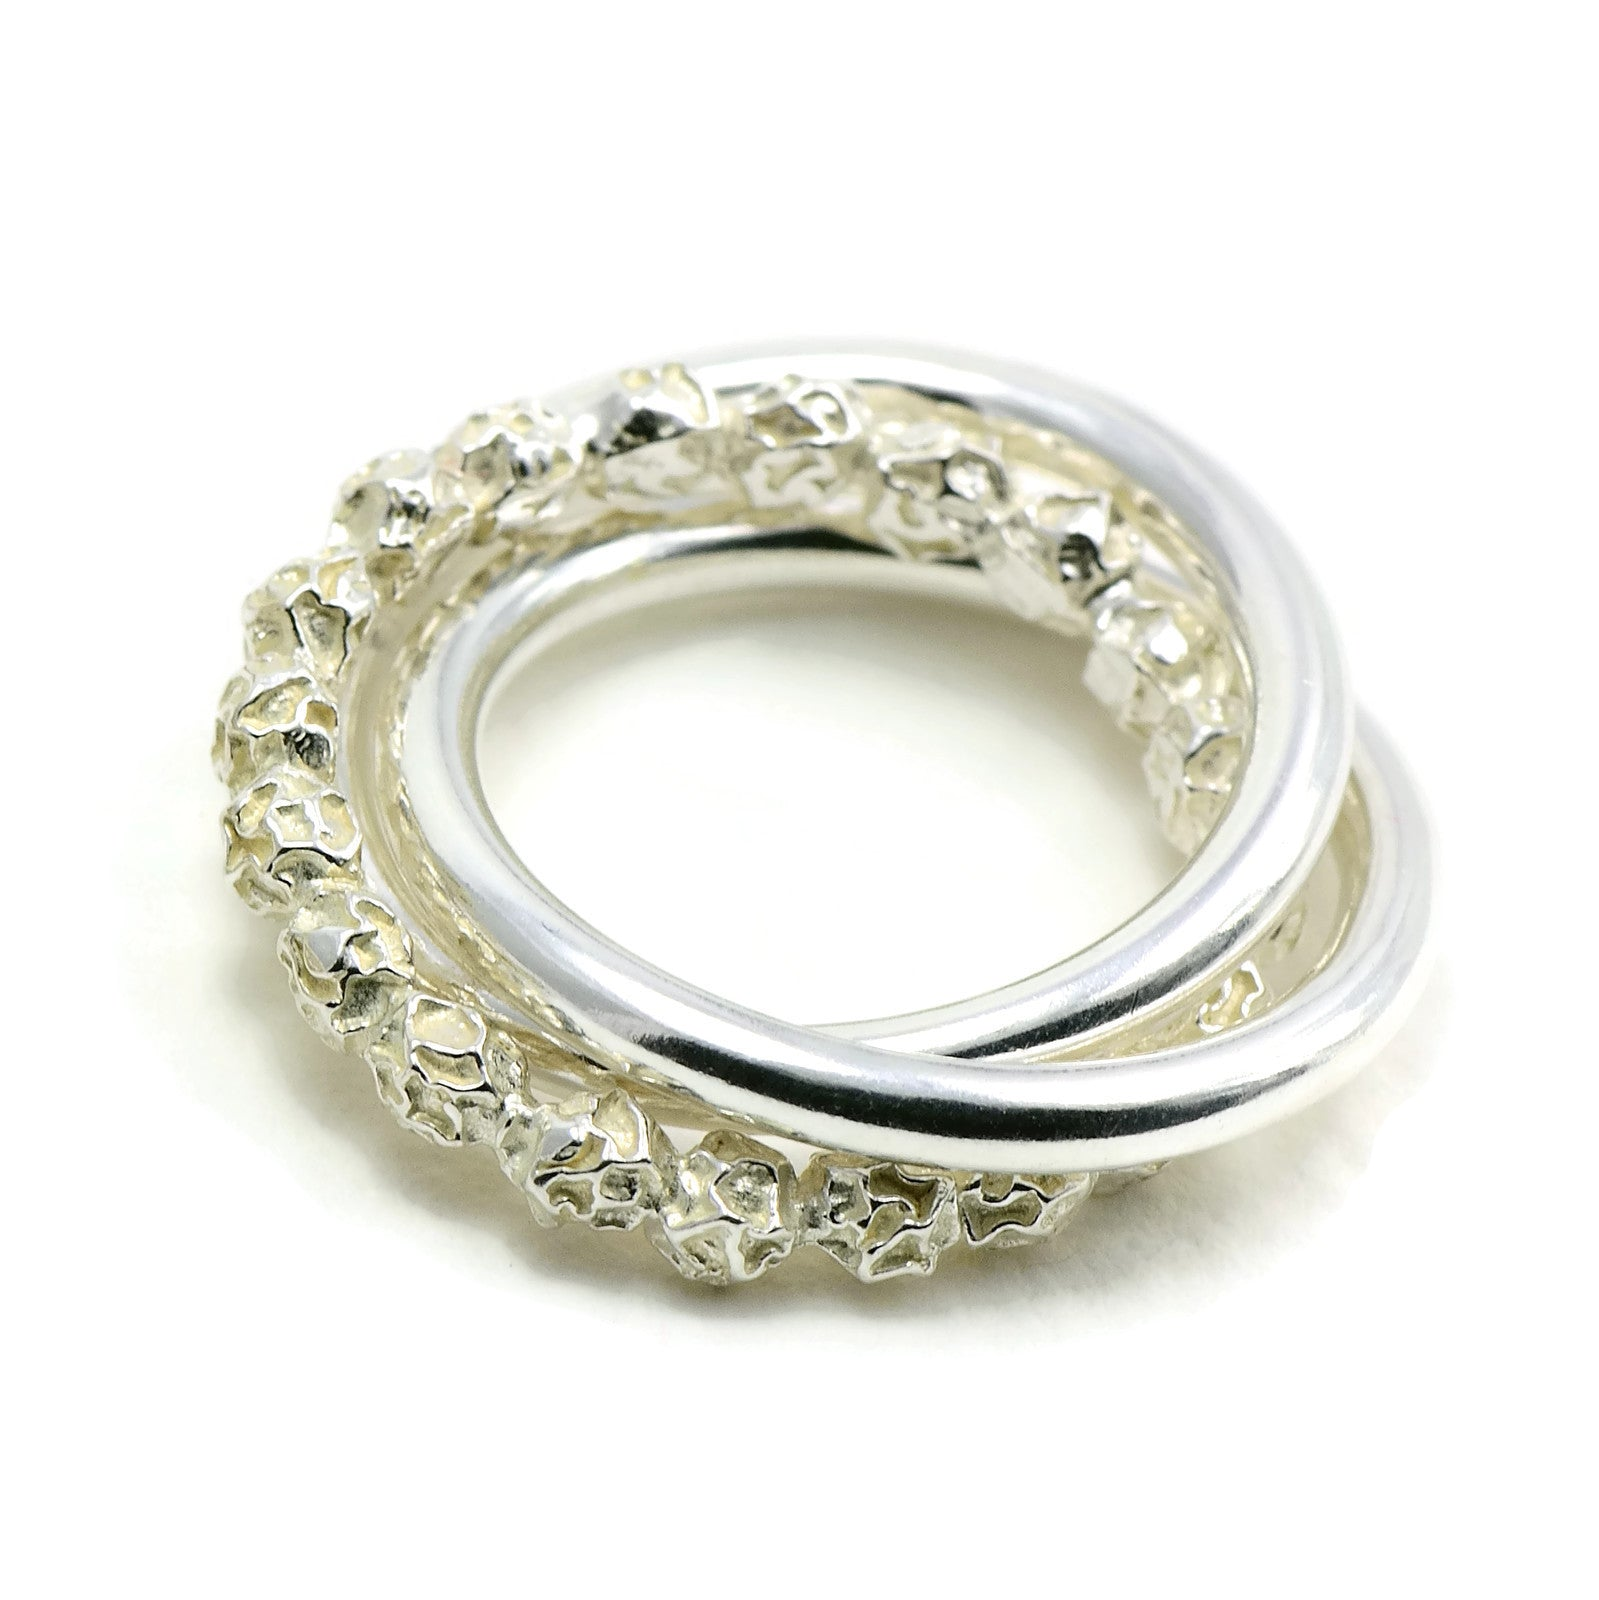 Russian Wedding Ring Design Sterling Silver Peppercorns